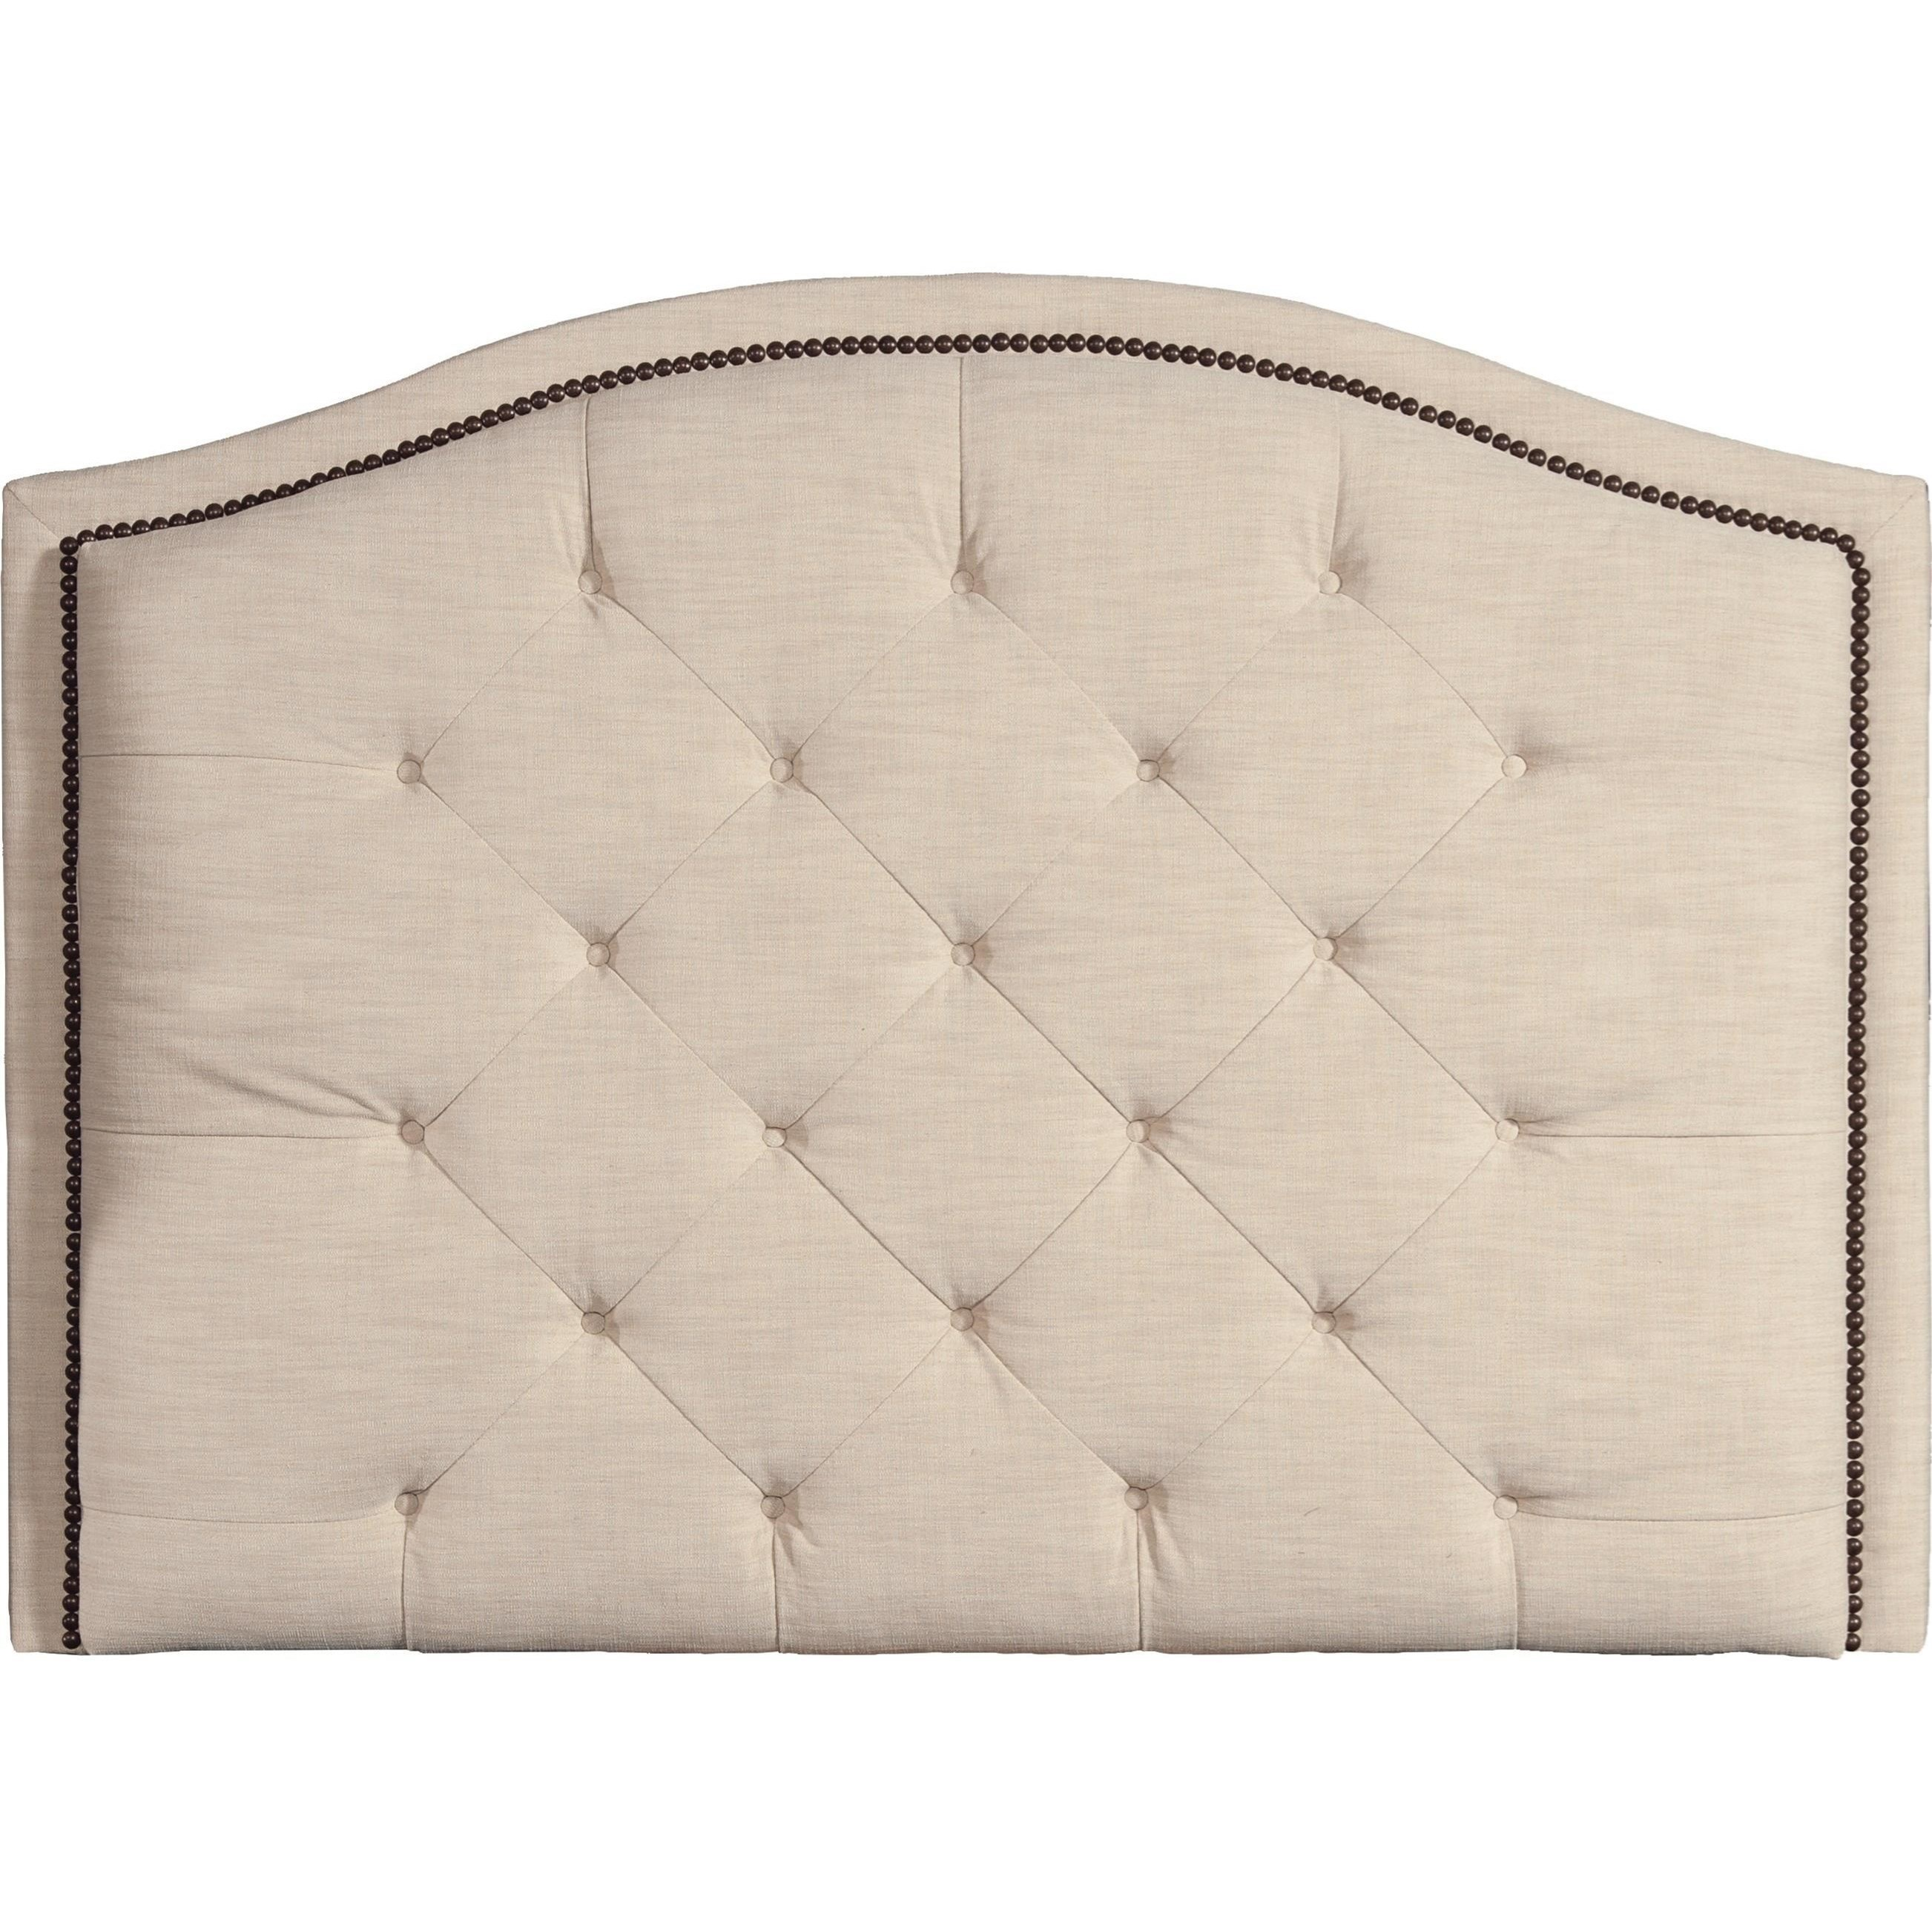 7040 King Headboard by Mayo at Wilcox Furniture